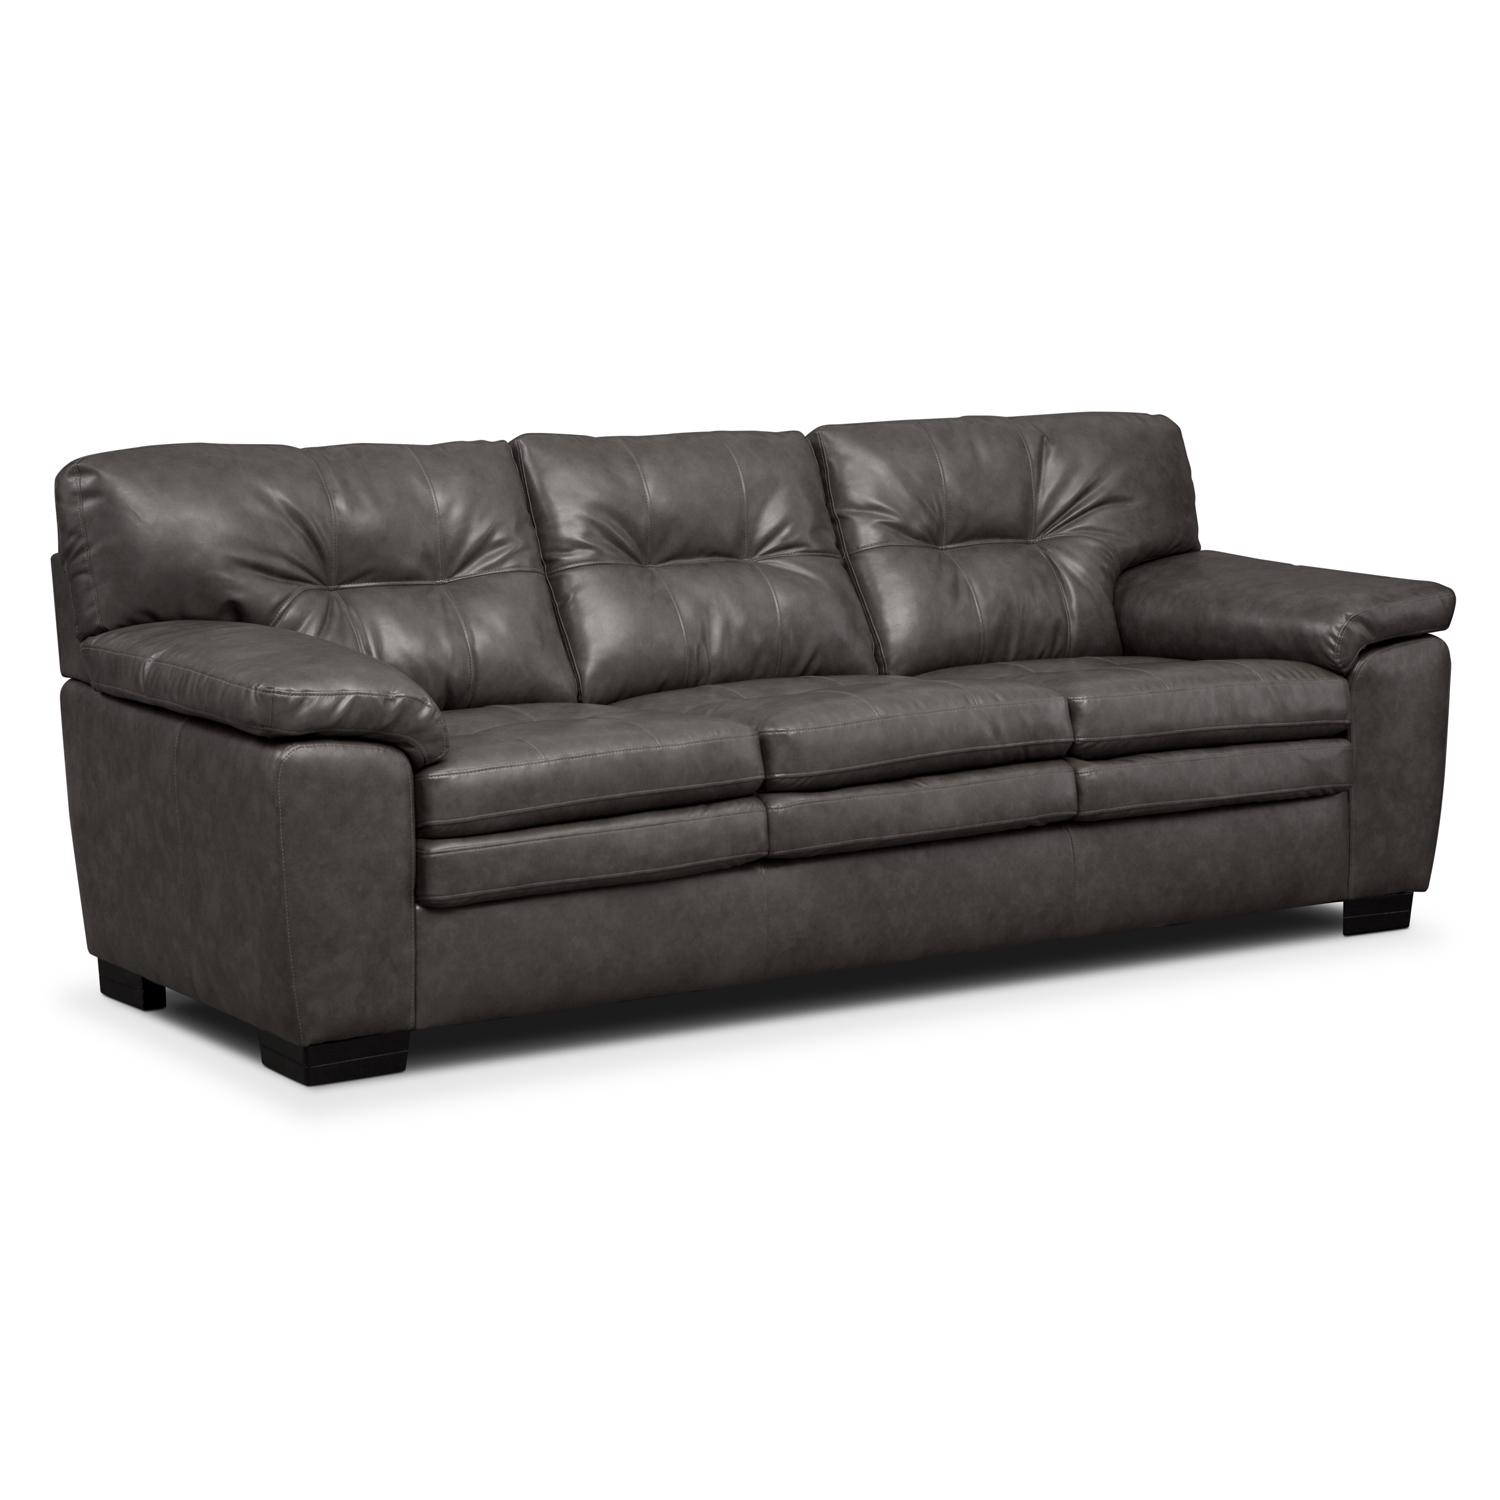 Furniture : Gus Modern Jane Sofa Picture Collection With Dark Gray Throughout Grey Sofa Chairs (View 7 of 20)